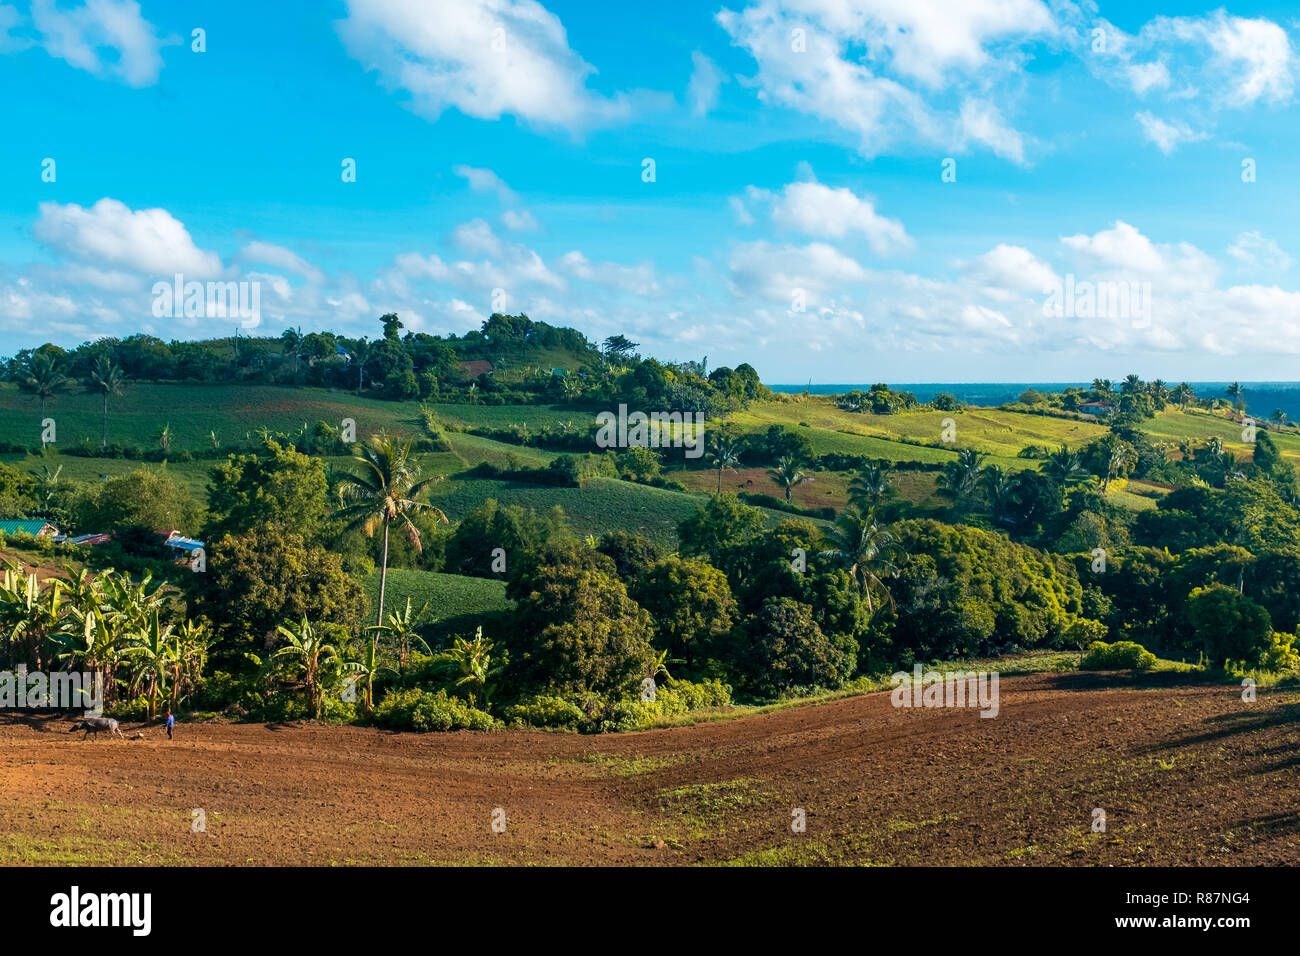 Farm lands of Batulao in the province of Batangas, Philippines - Stock Image